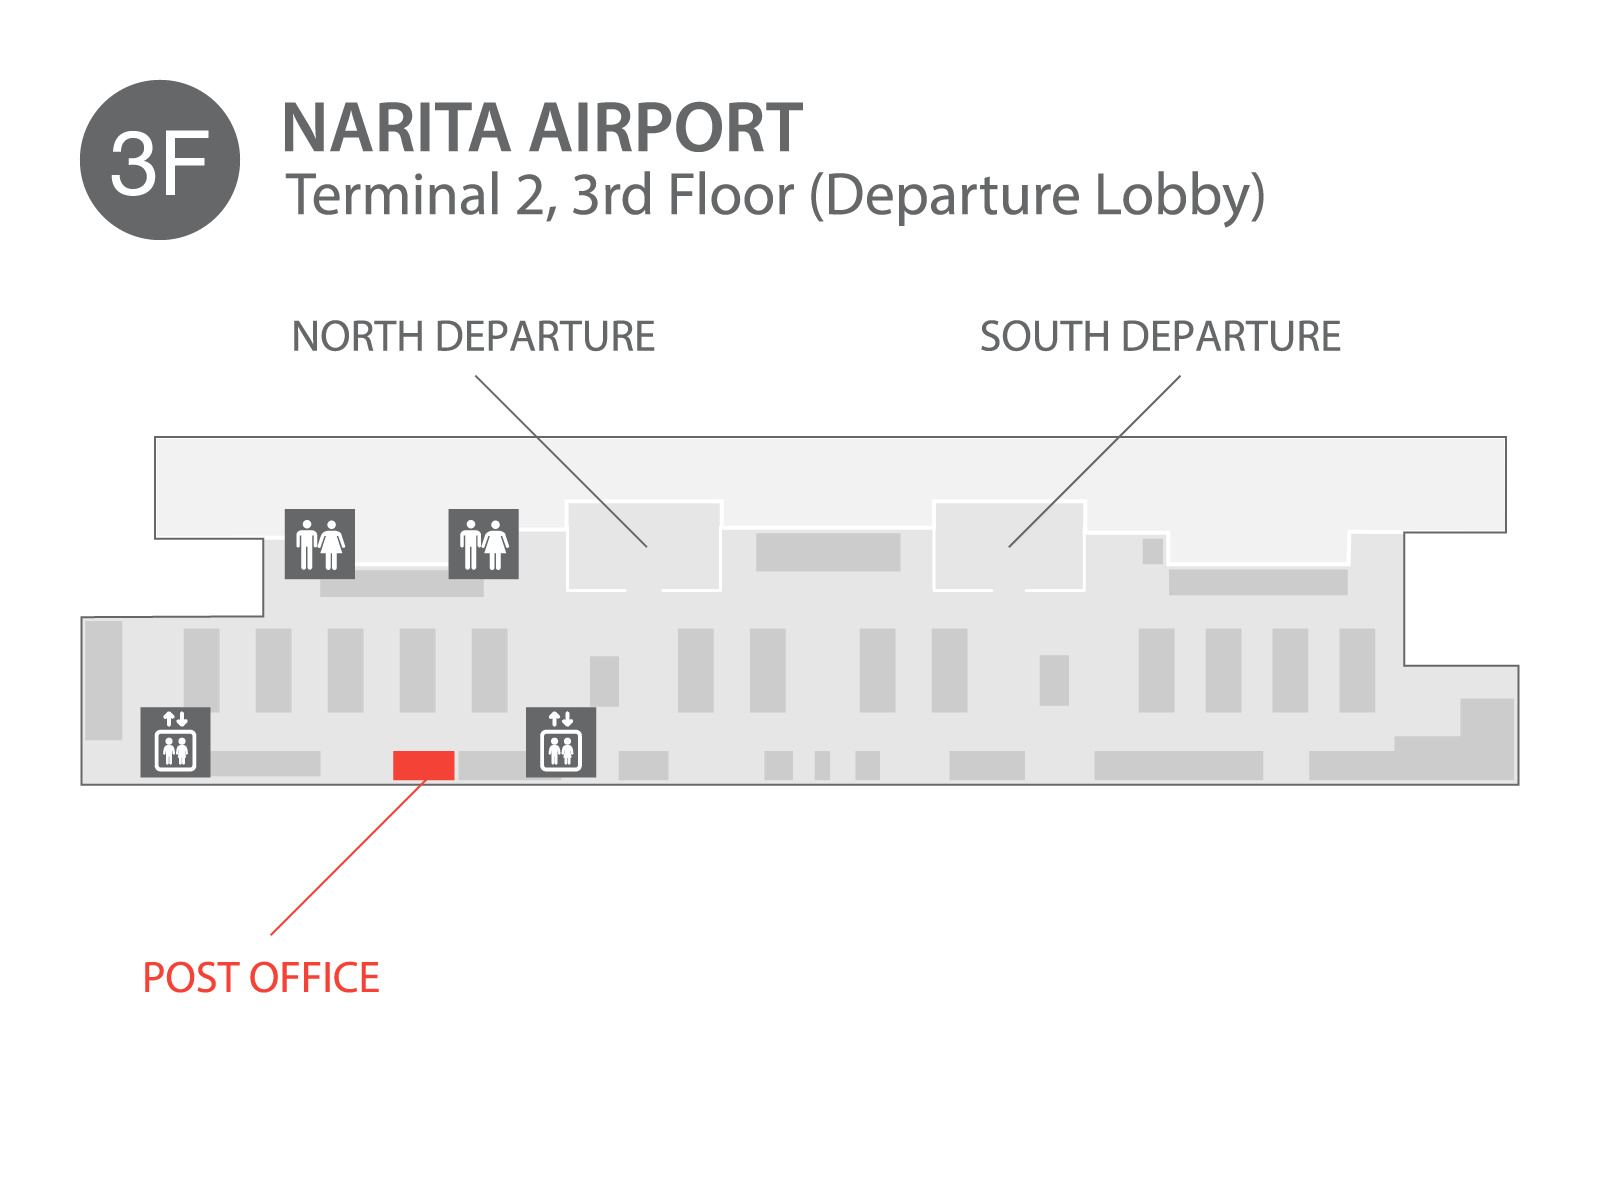 Narita Airport Terminal 2 - Narita airport Terminal 2 located on 3rd floor.